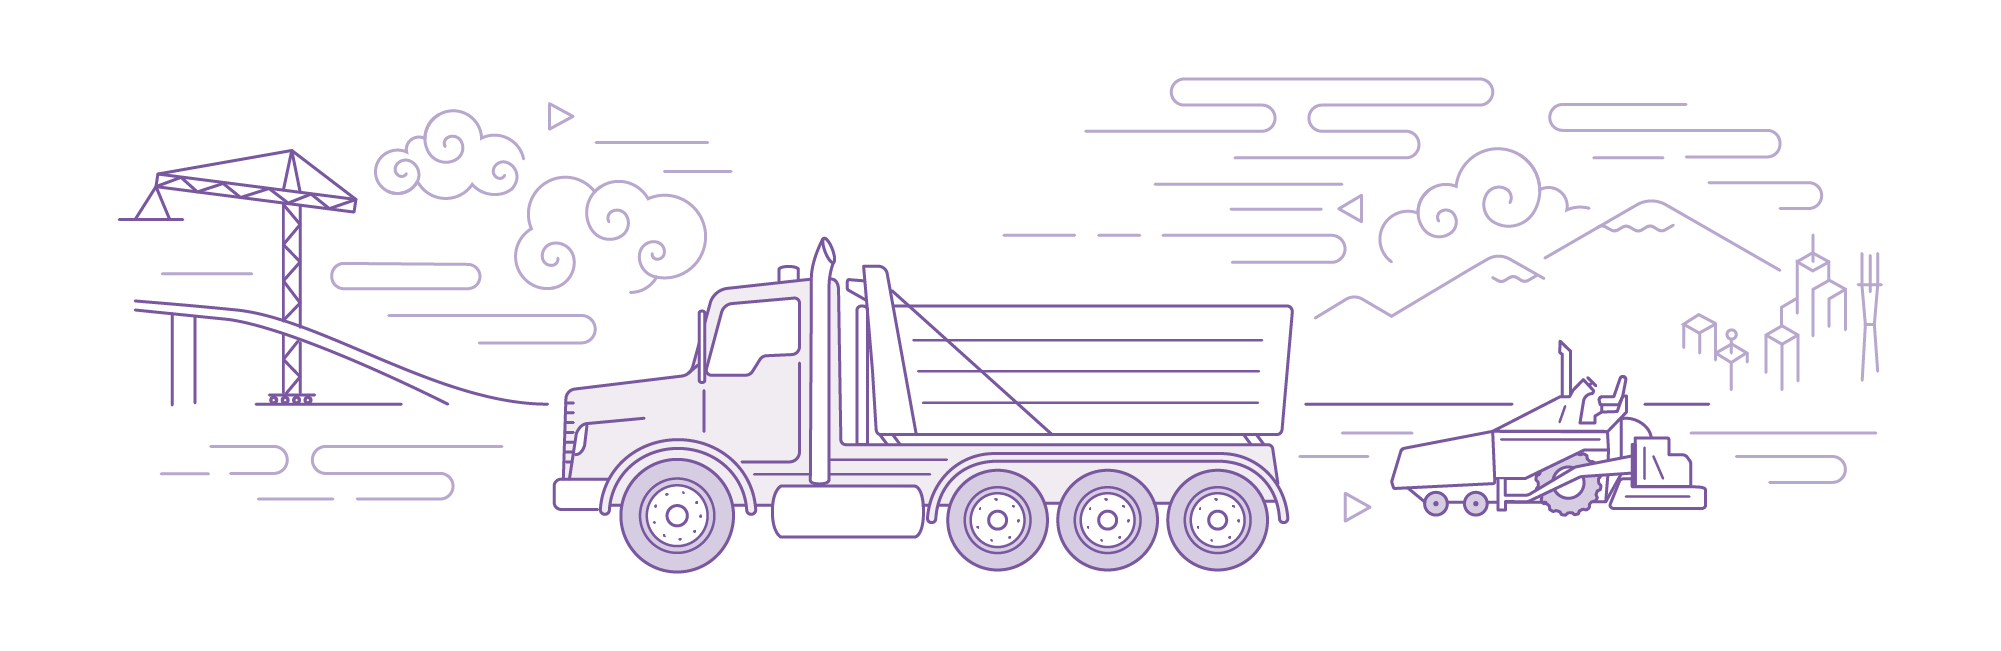 asphalt truck illustration